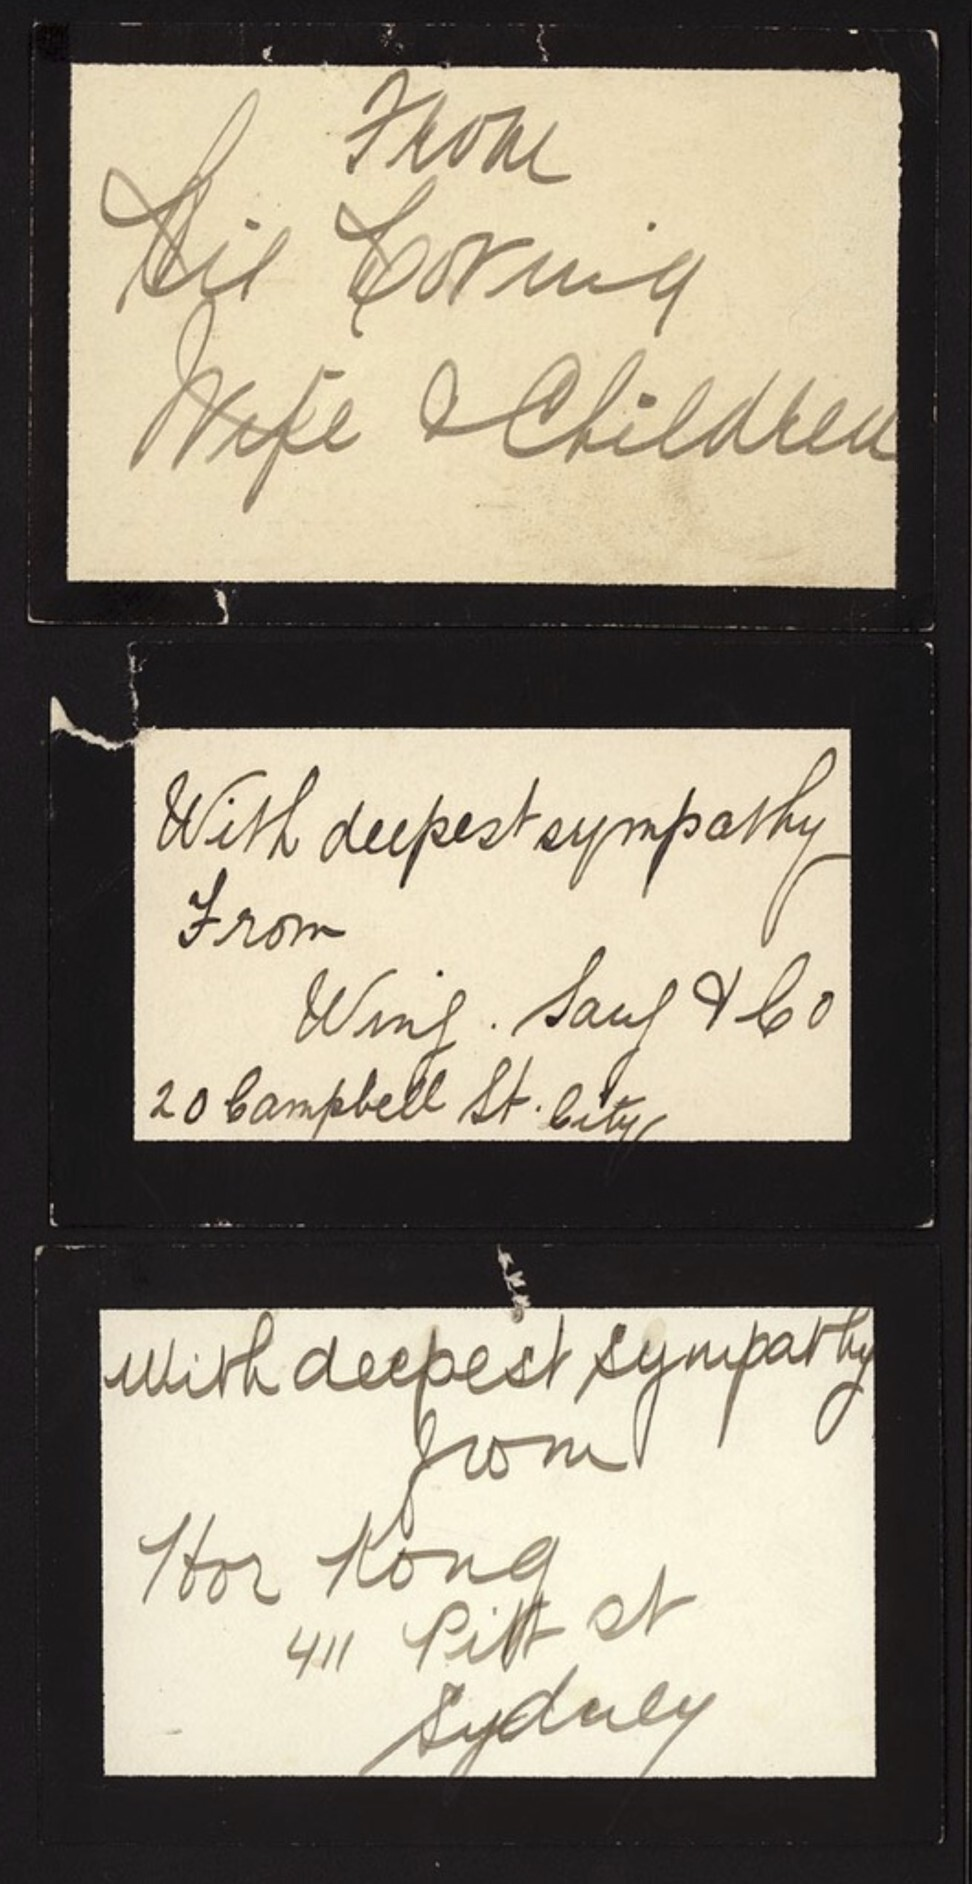 Condolence notes after the death of Quong Tart in 1903. Photo: State Library of NSW